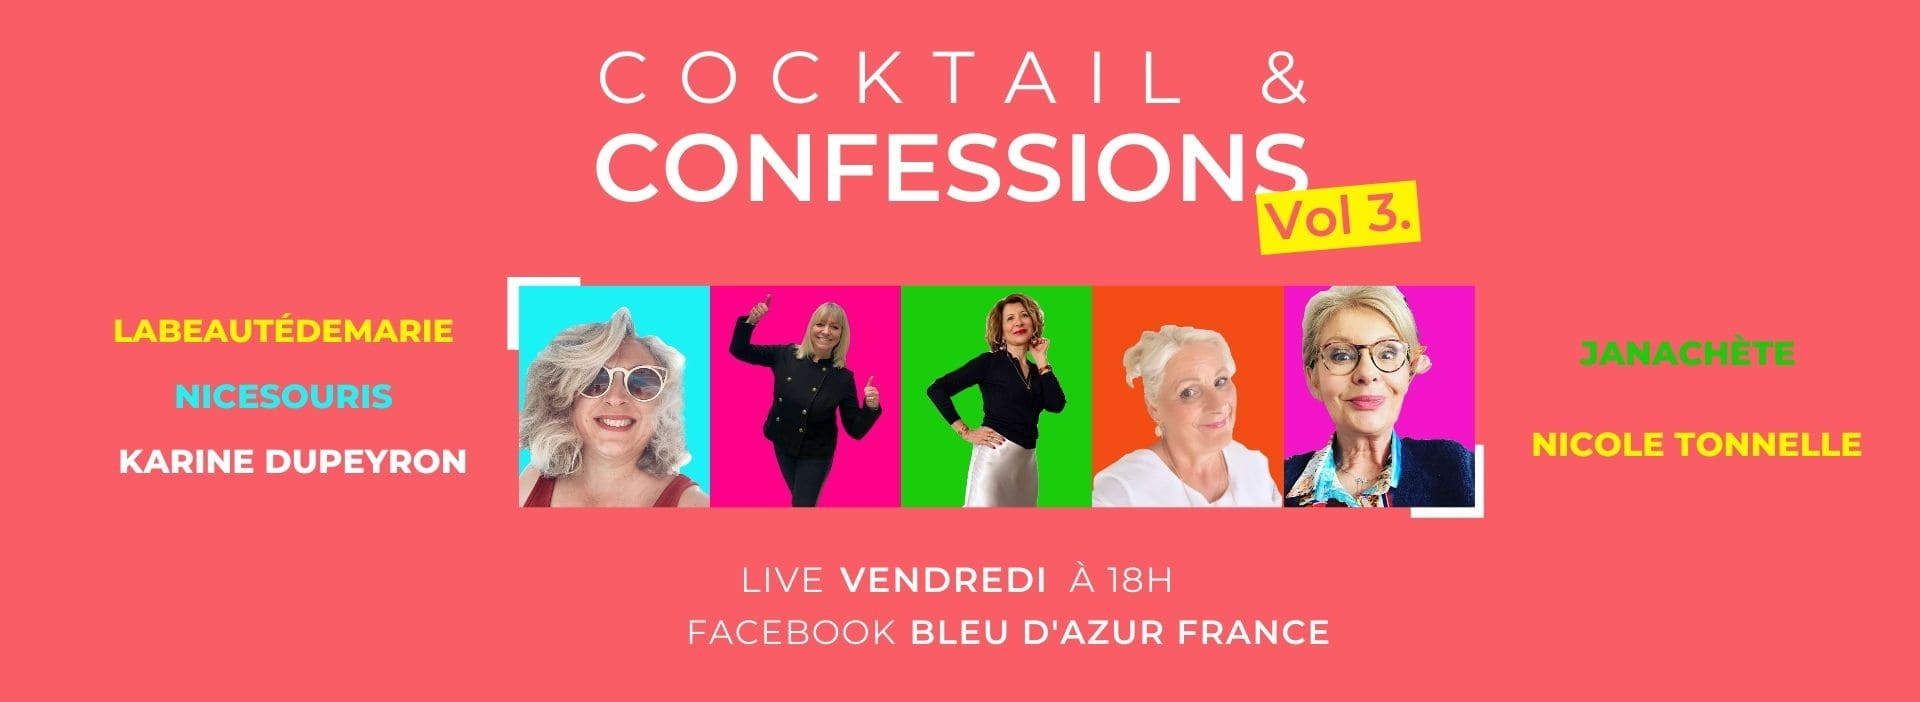 COCKTAIL & CONFESSIONS VOL.3